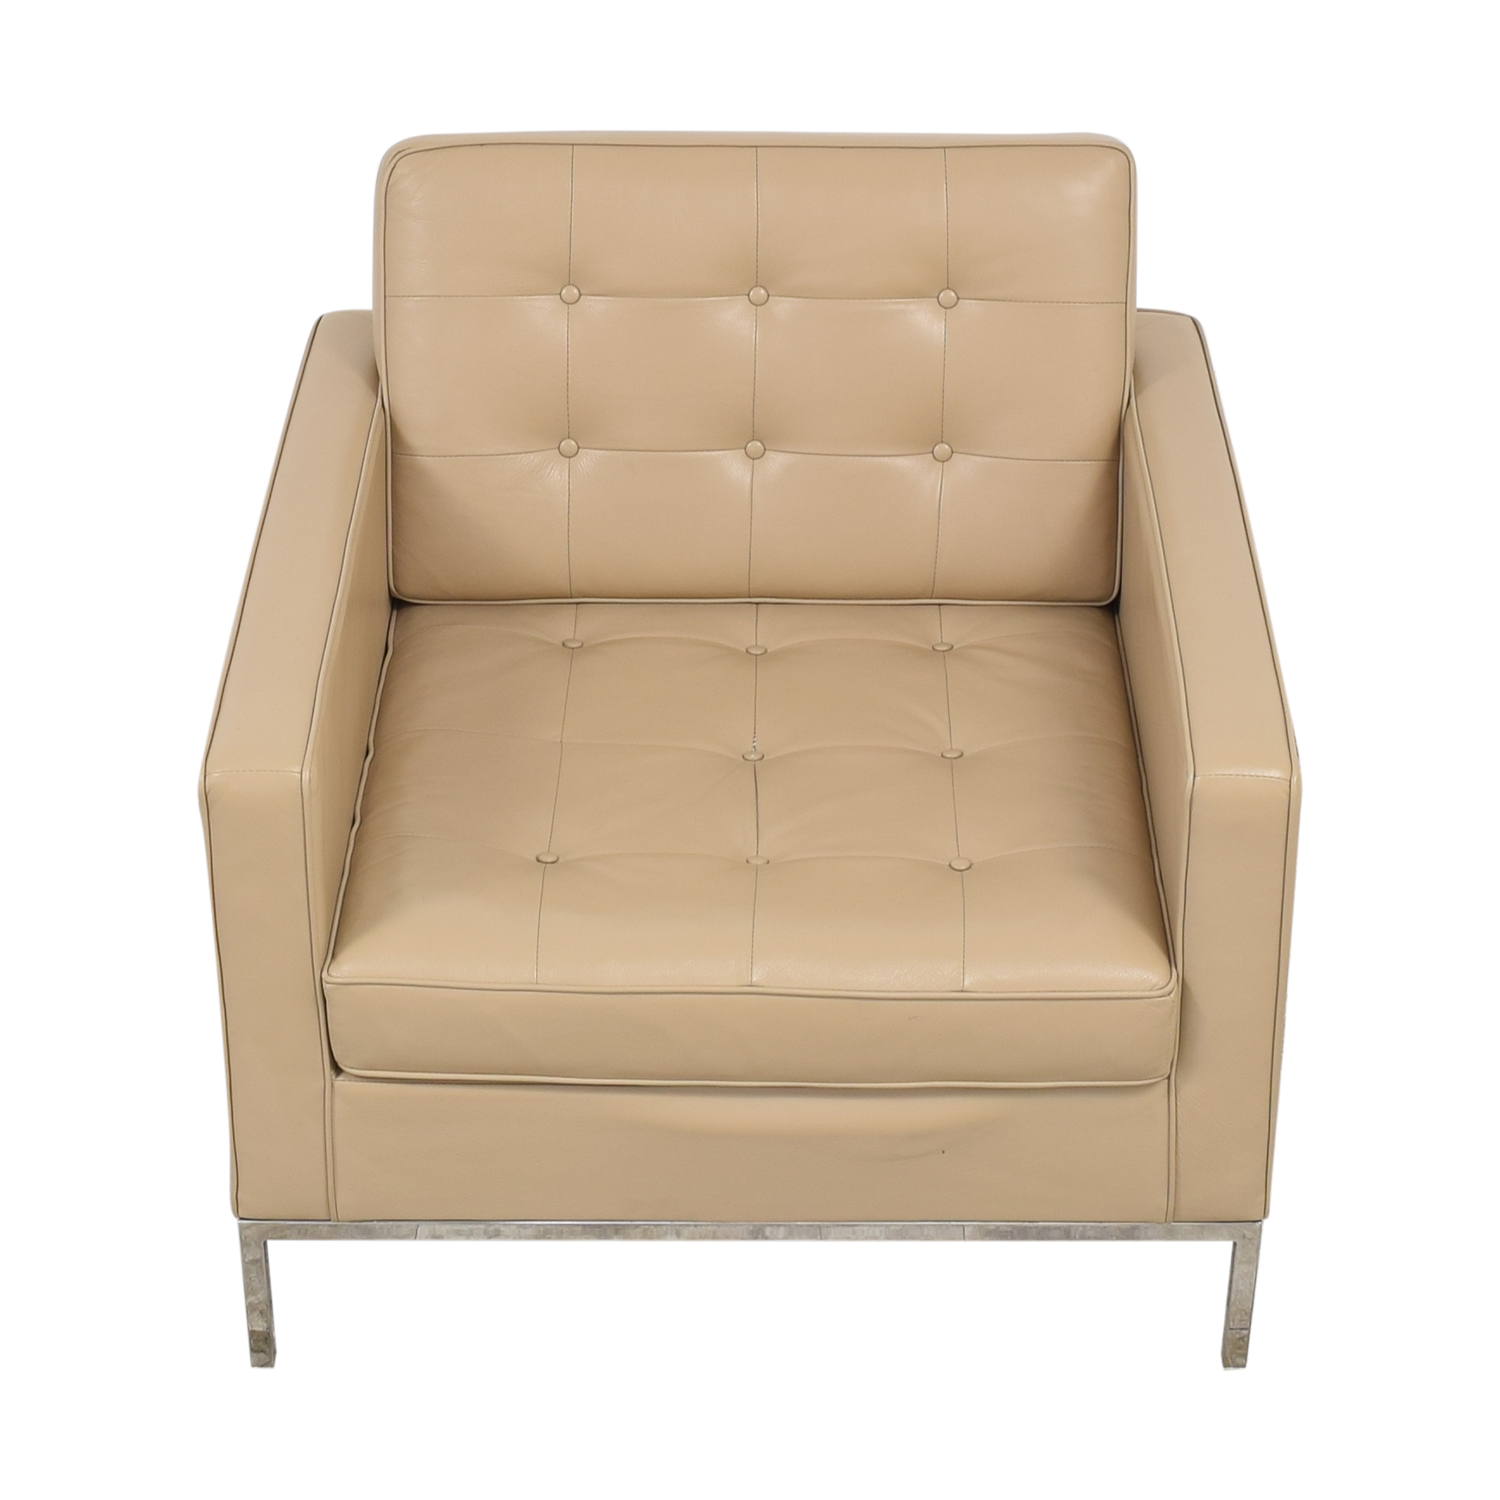 Inmod Inmod Florence Knoll Reproduction Leather Arm Chair nj